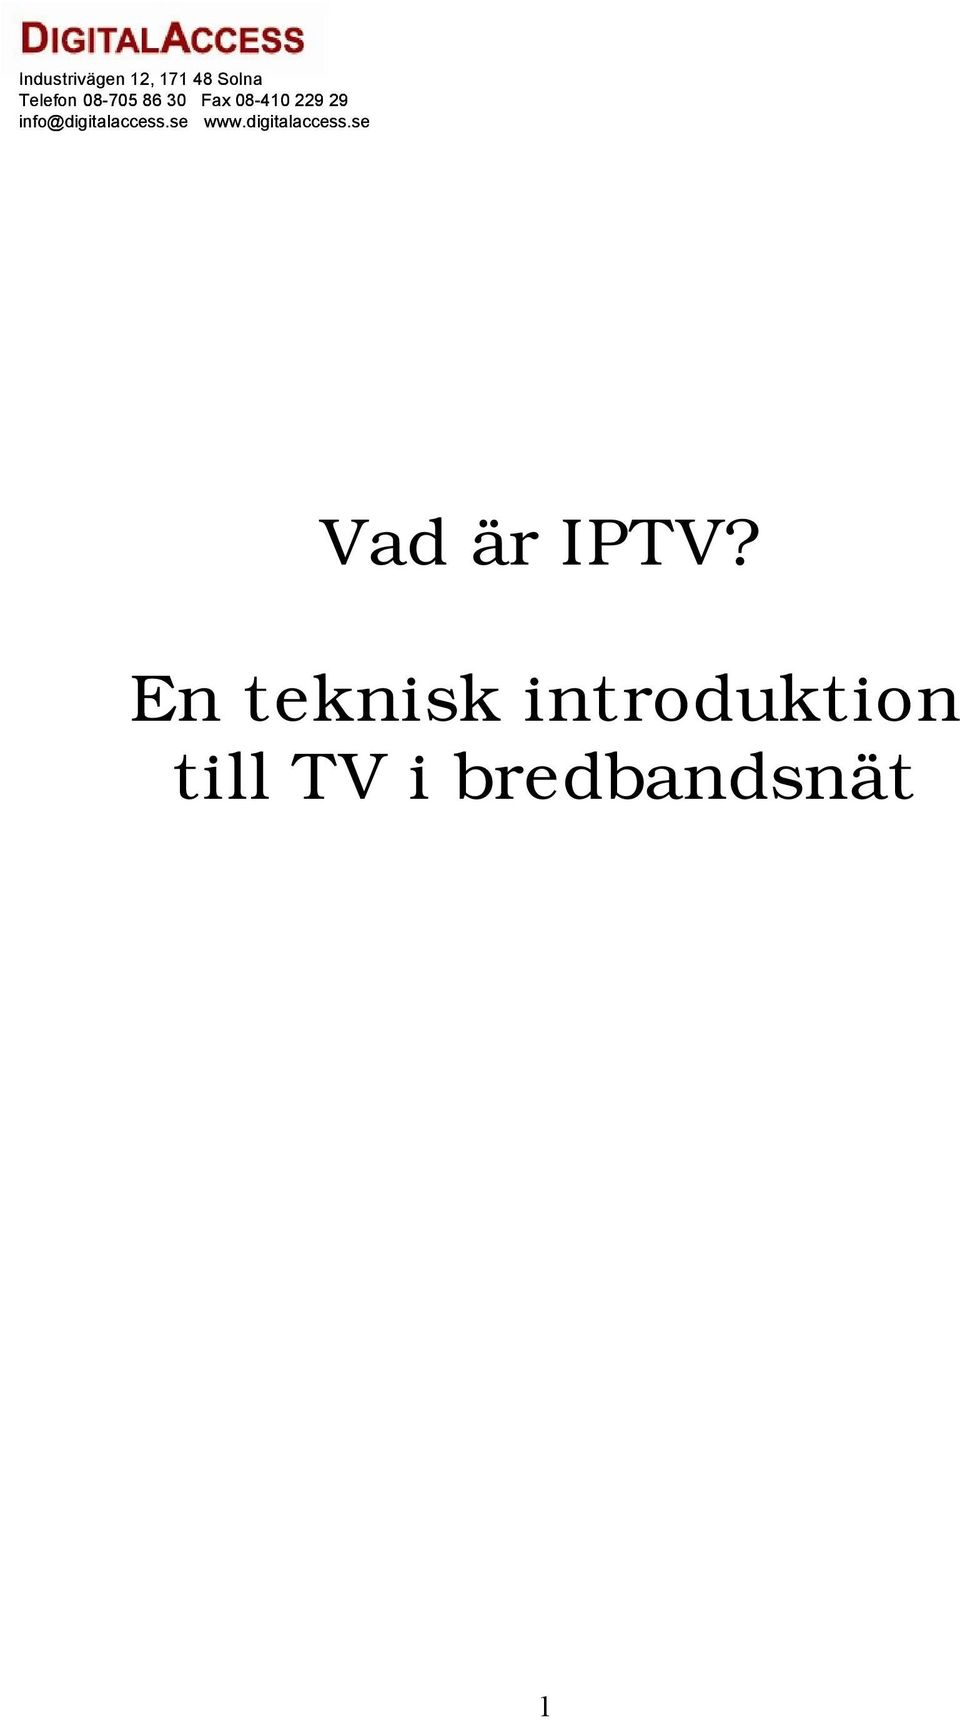 info@digitalaccess.se www.digitalaccess.se Vad är IPTV?